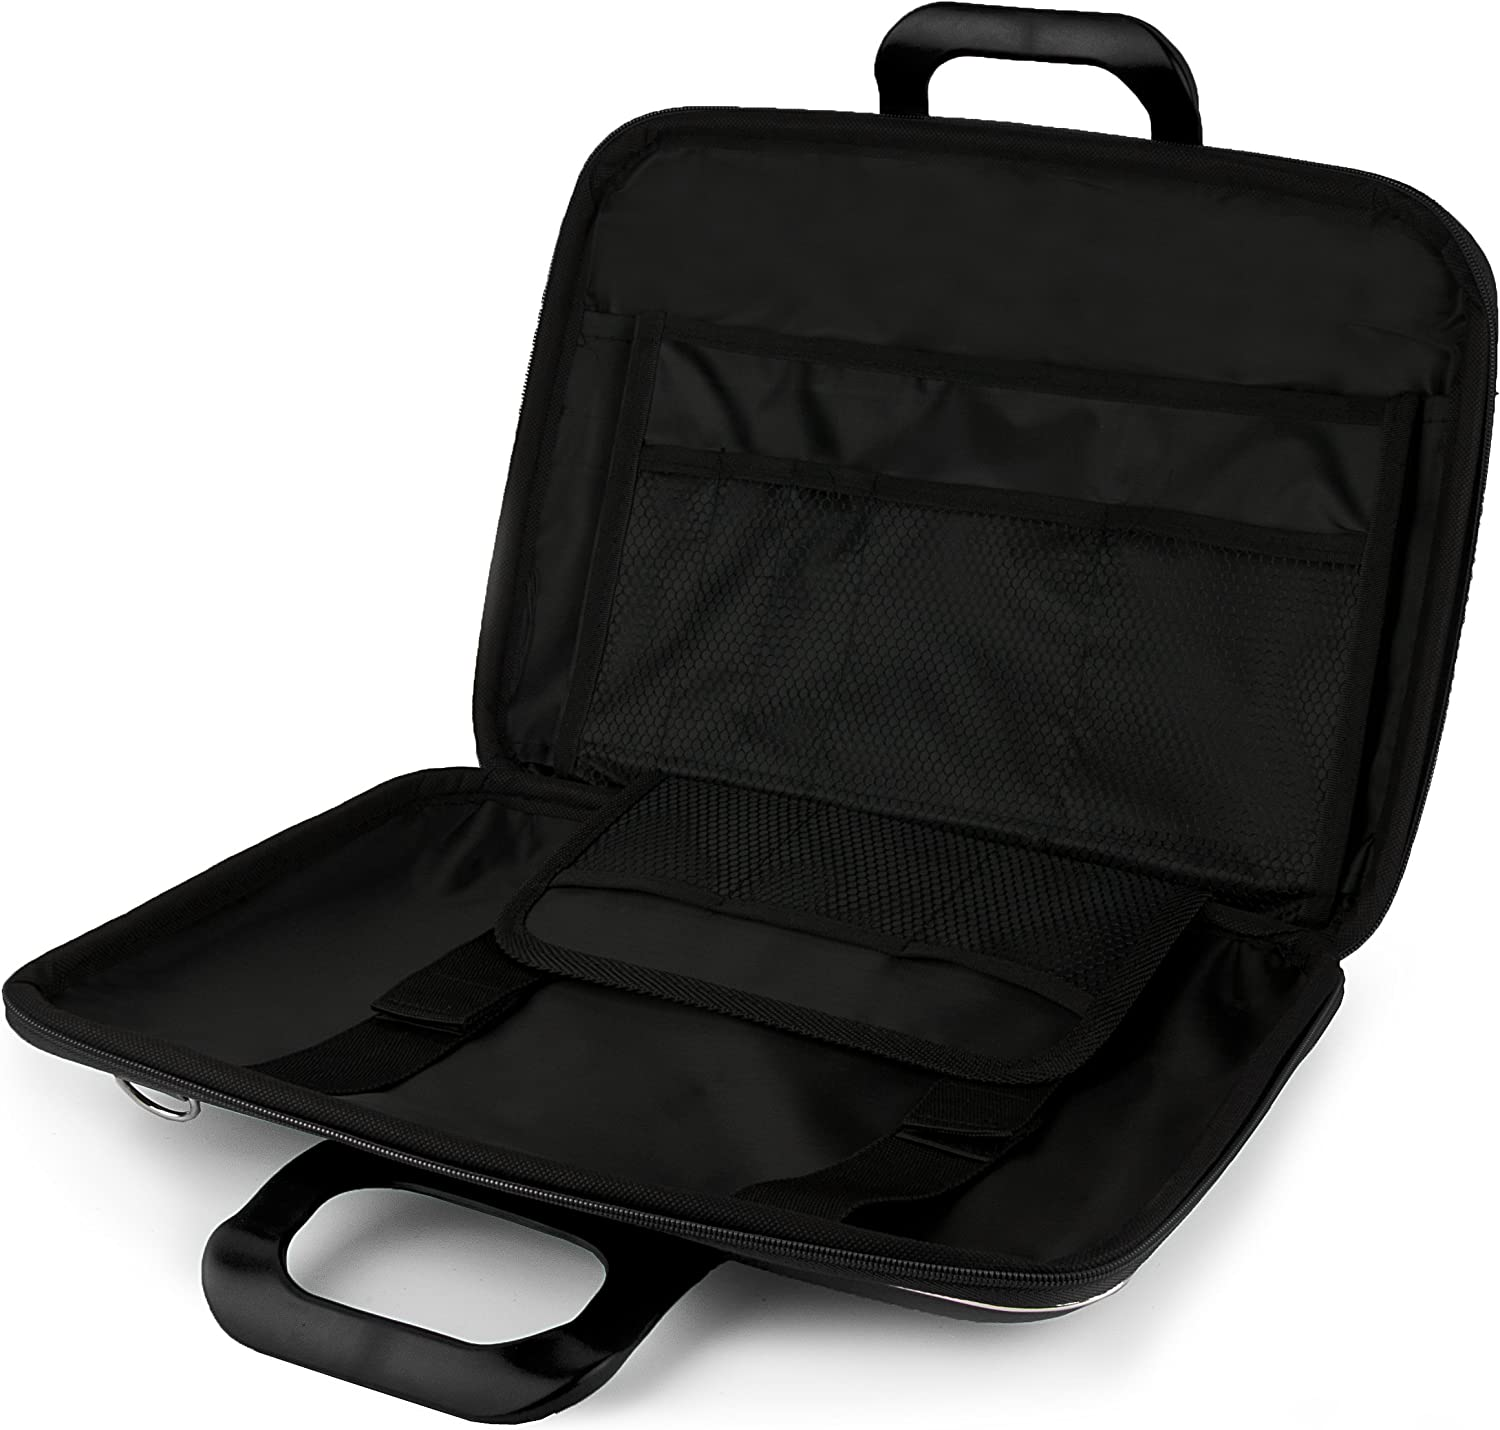 WS Series P Series PS Series Laptops up to 15.45 inches with USB Hub Laptop Messenger Bag for MSI WE Series